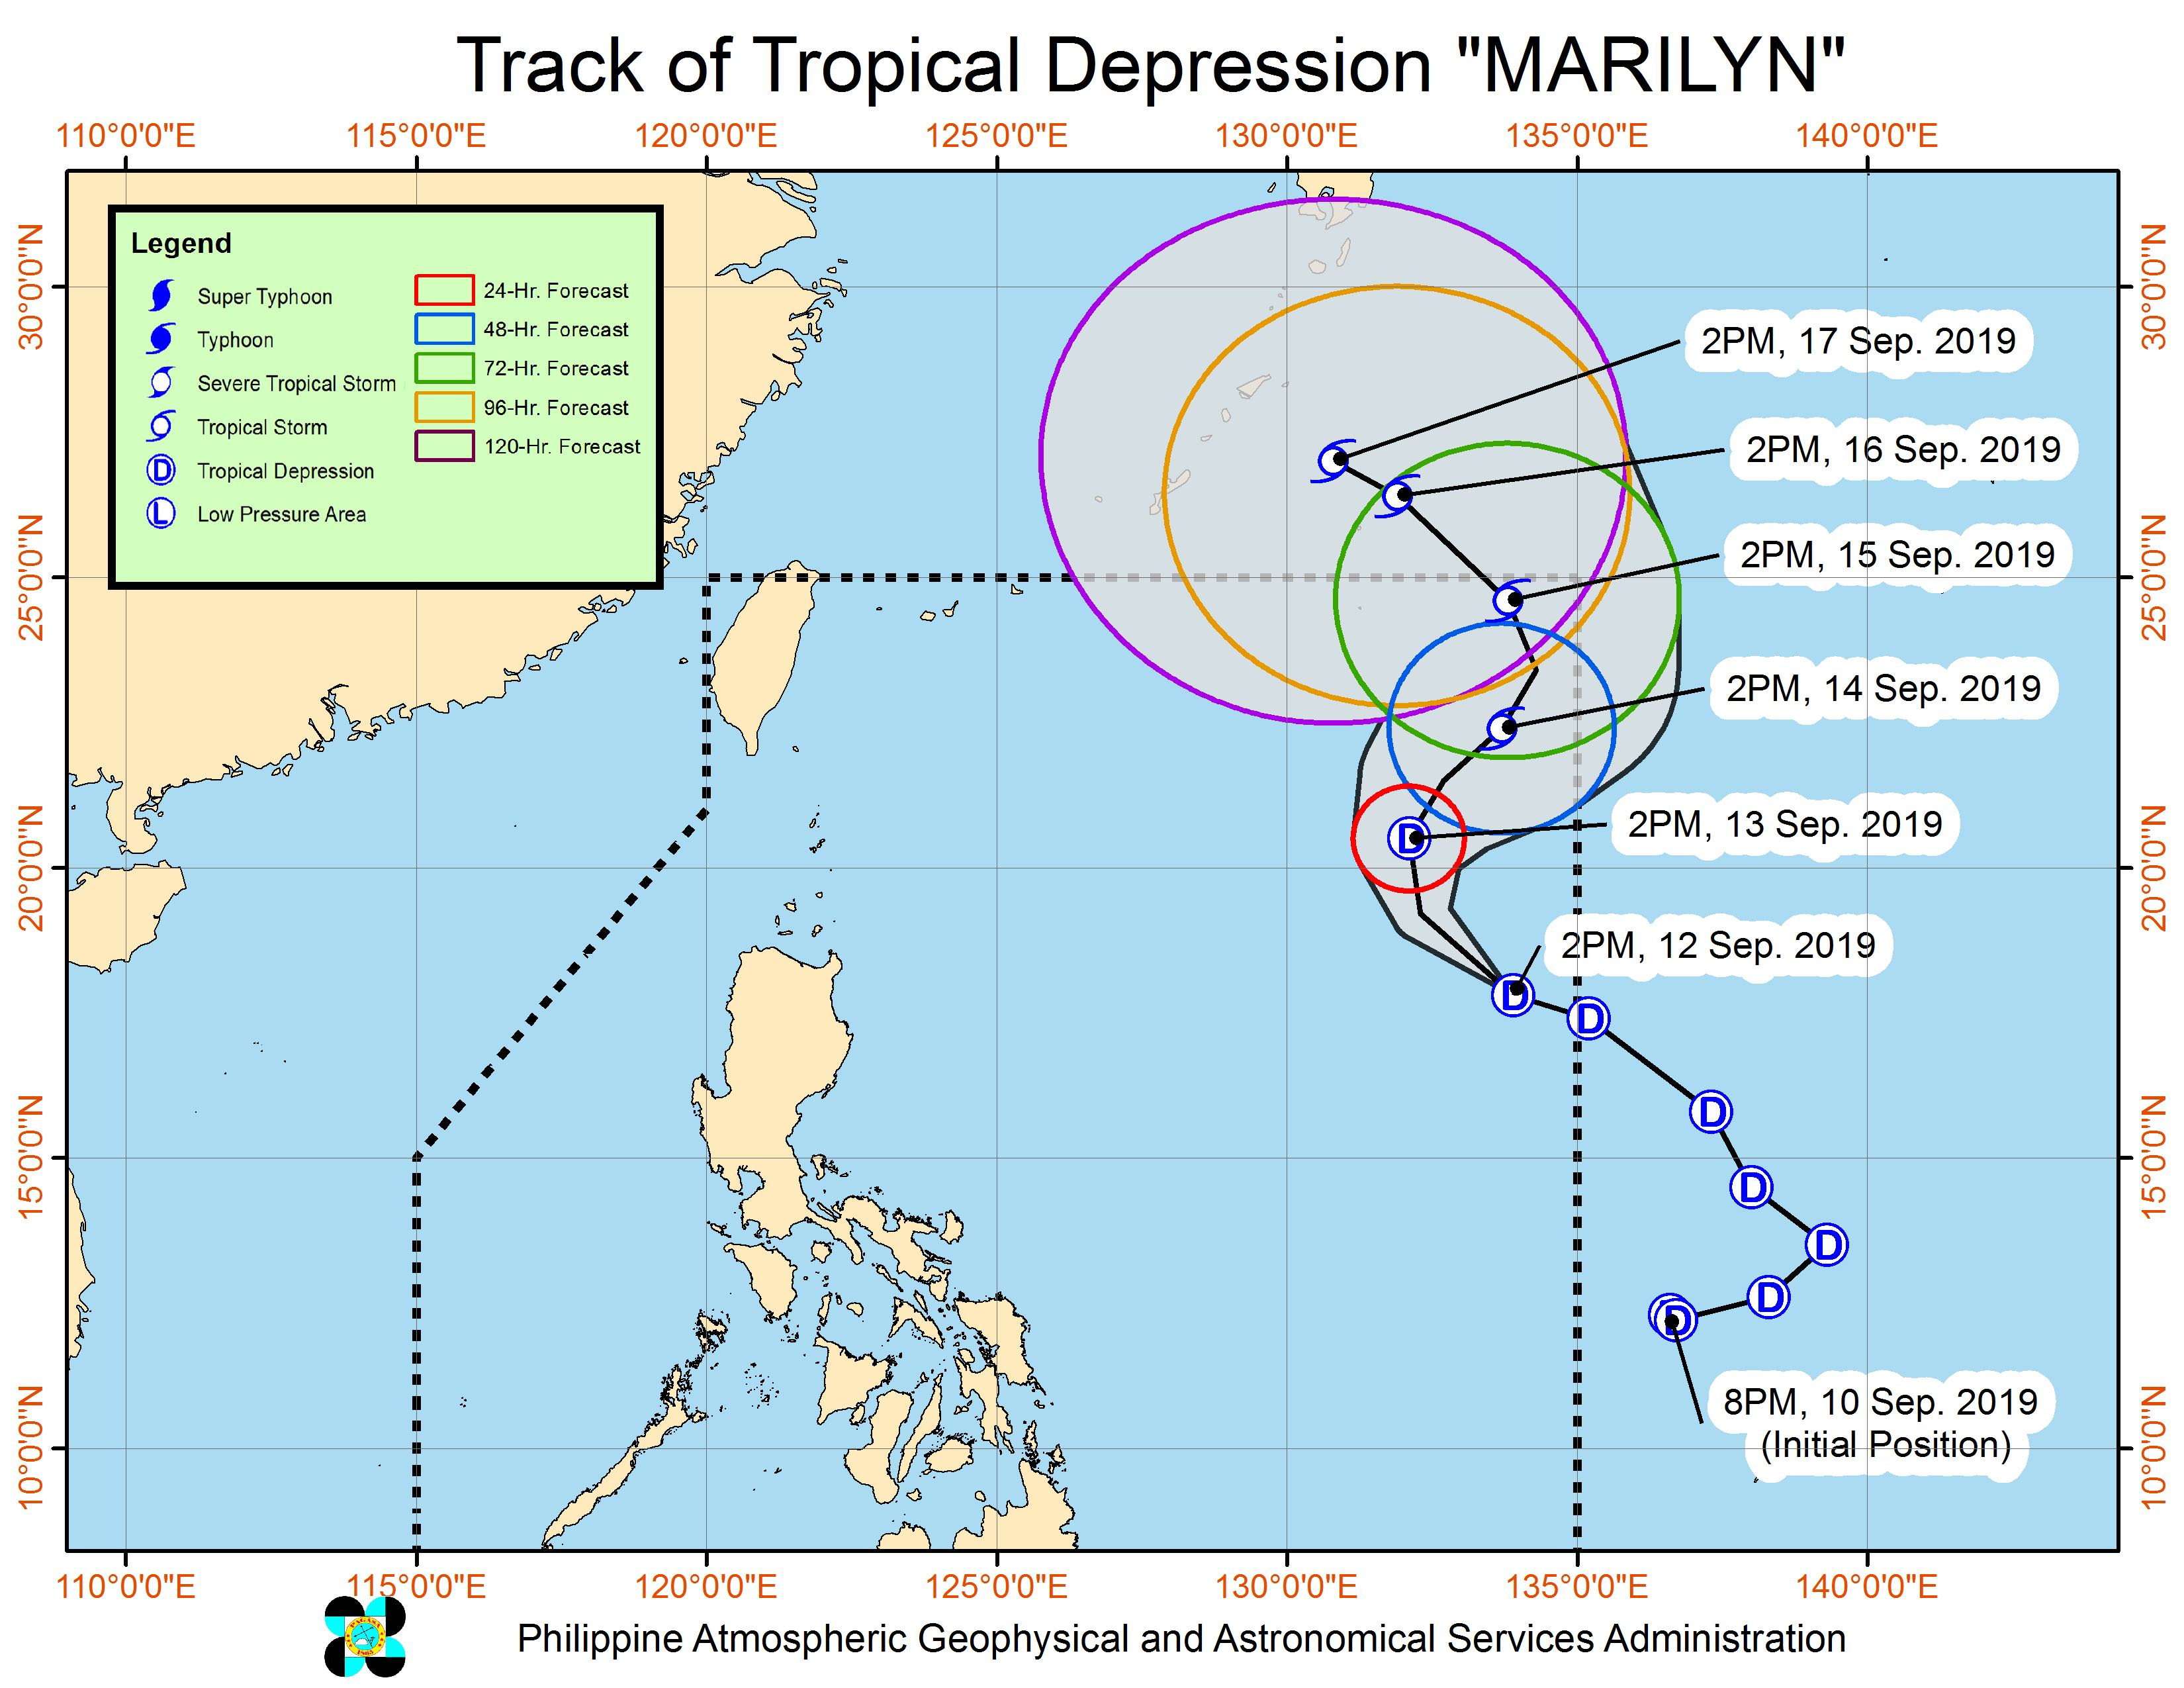 Forecast track of Tropical Depression Marilyn as of September 12, 2019, 5 pm. Image from PAGASA